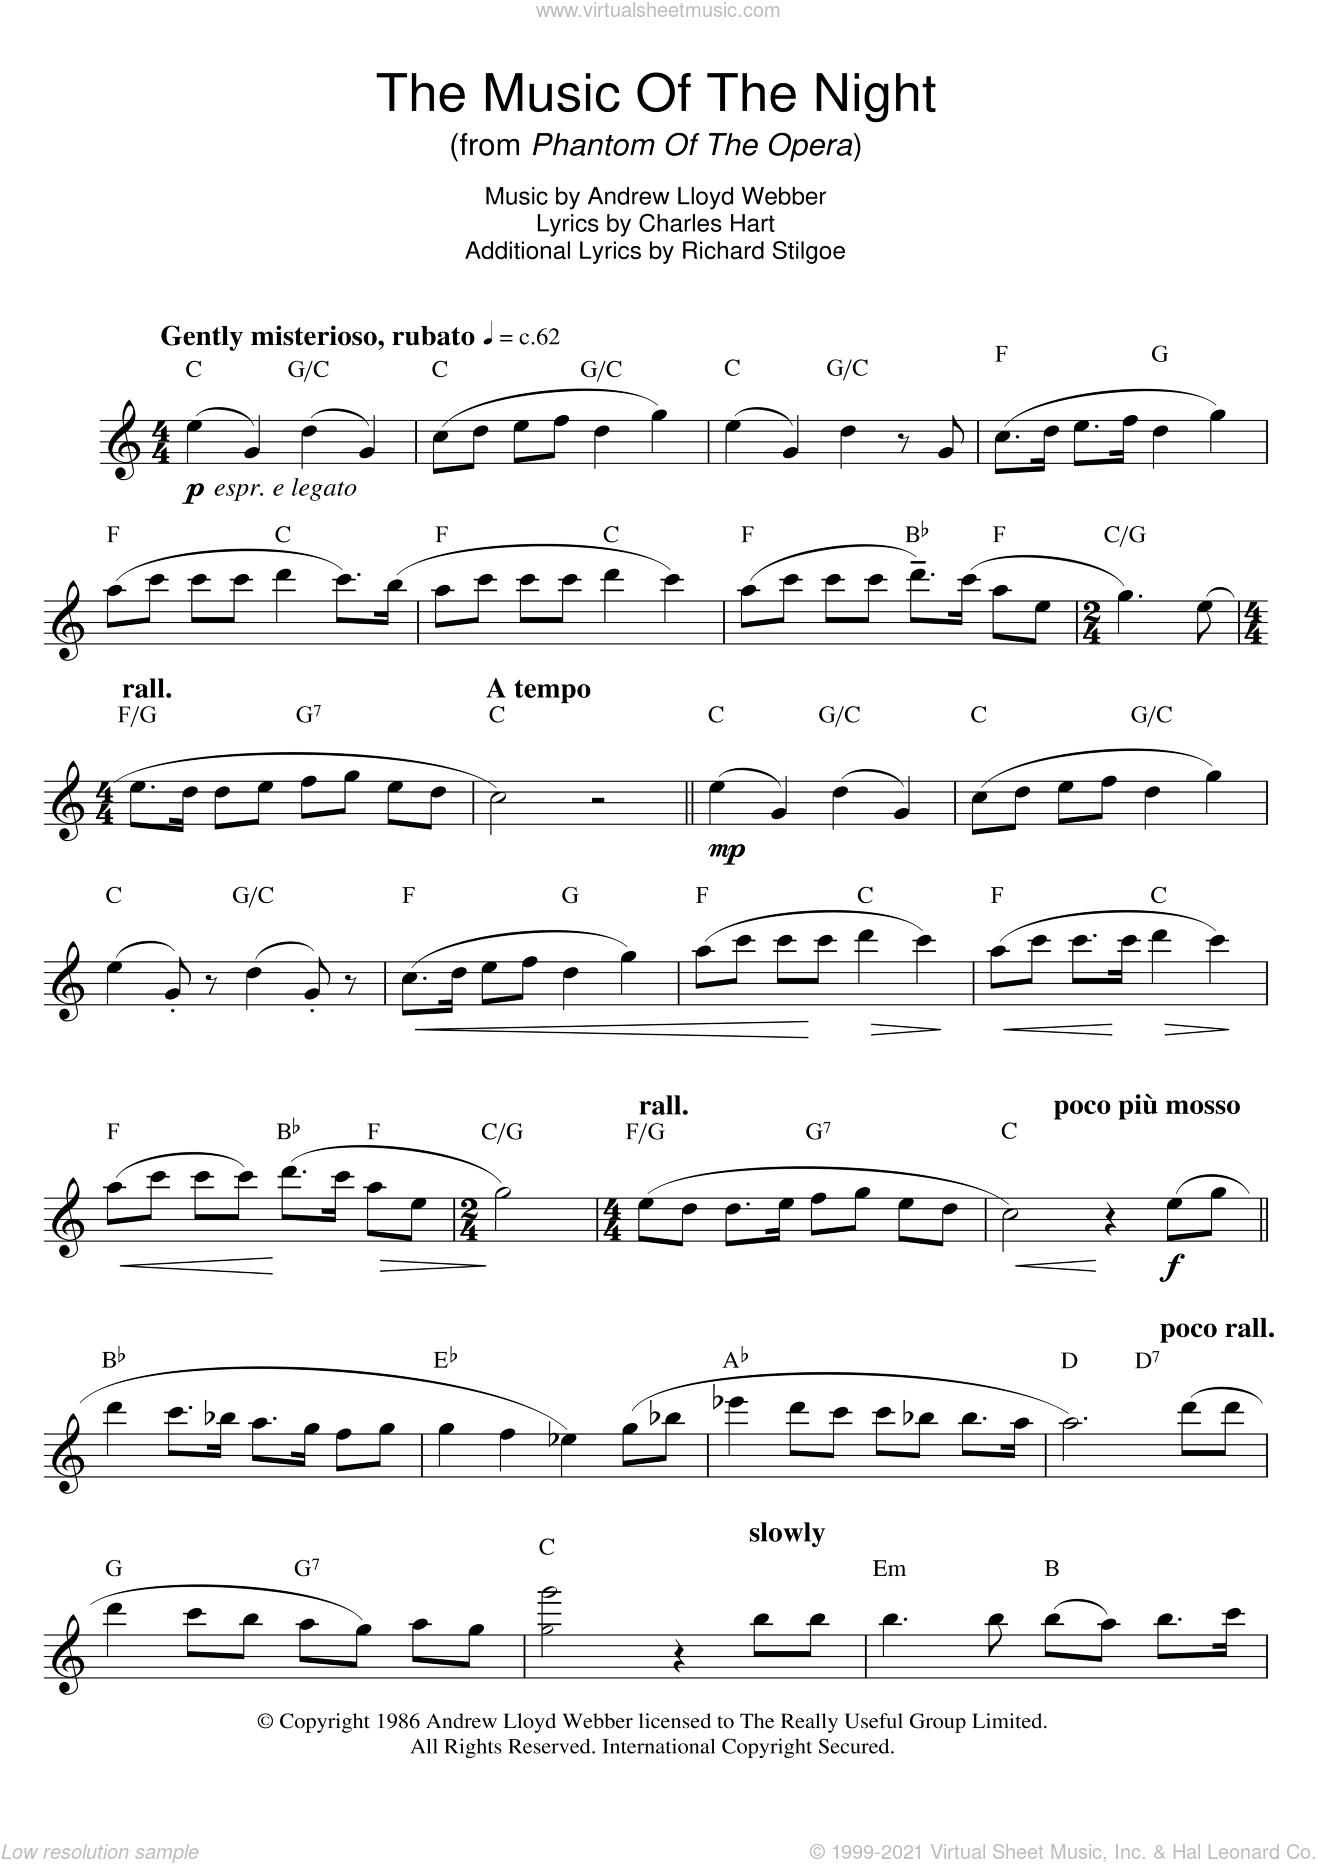 The Music Of The Night (from The Phantom Of The Opera) sheet music for flute solo by Michael Crawford, Andrew Lloyd Webber, Charles Hart and Richard Stilgoe, intermediate skill level